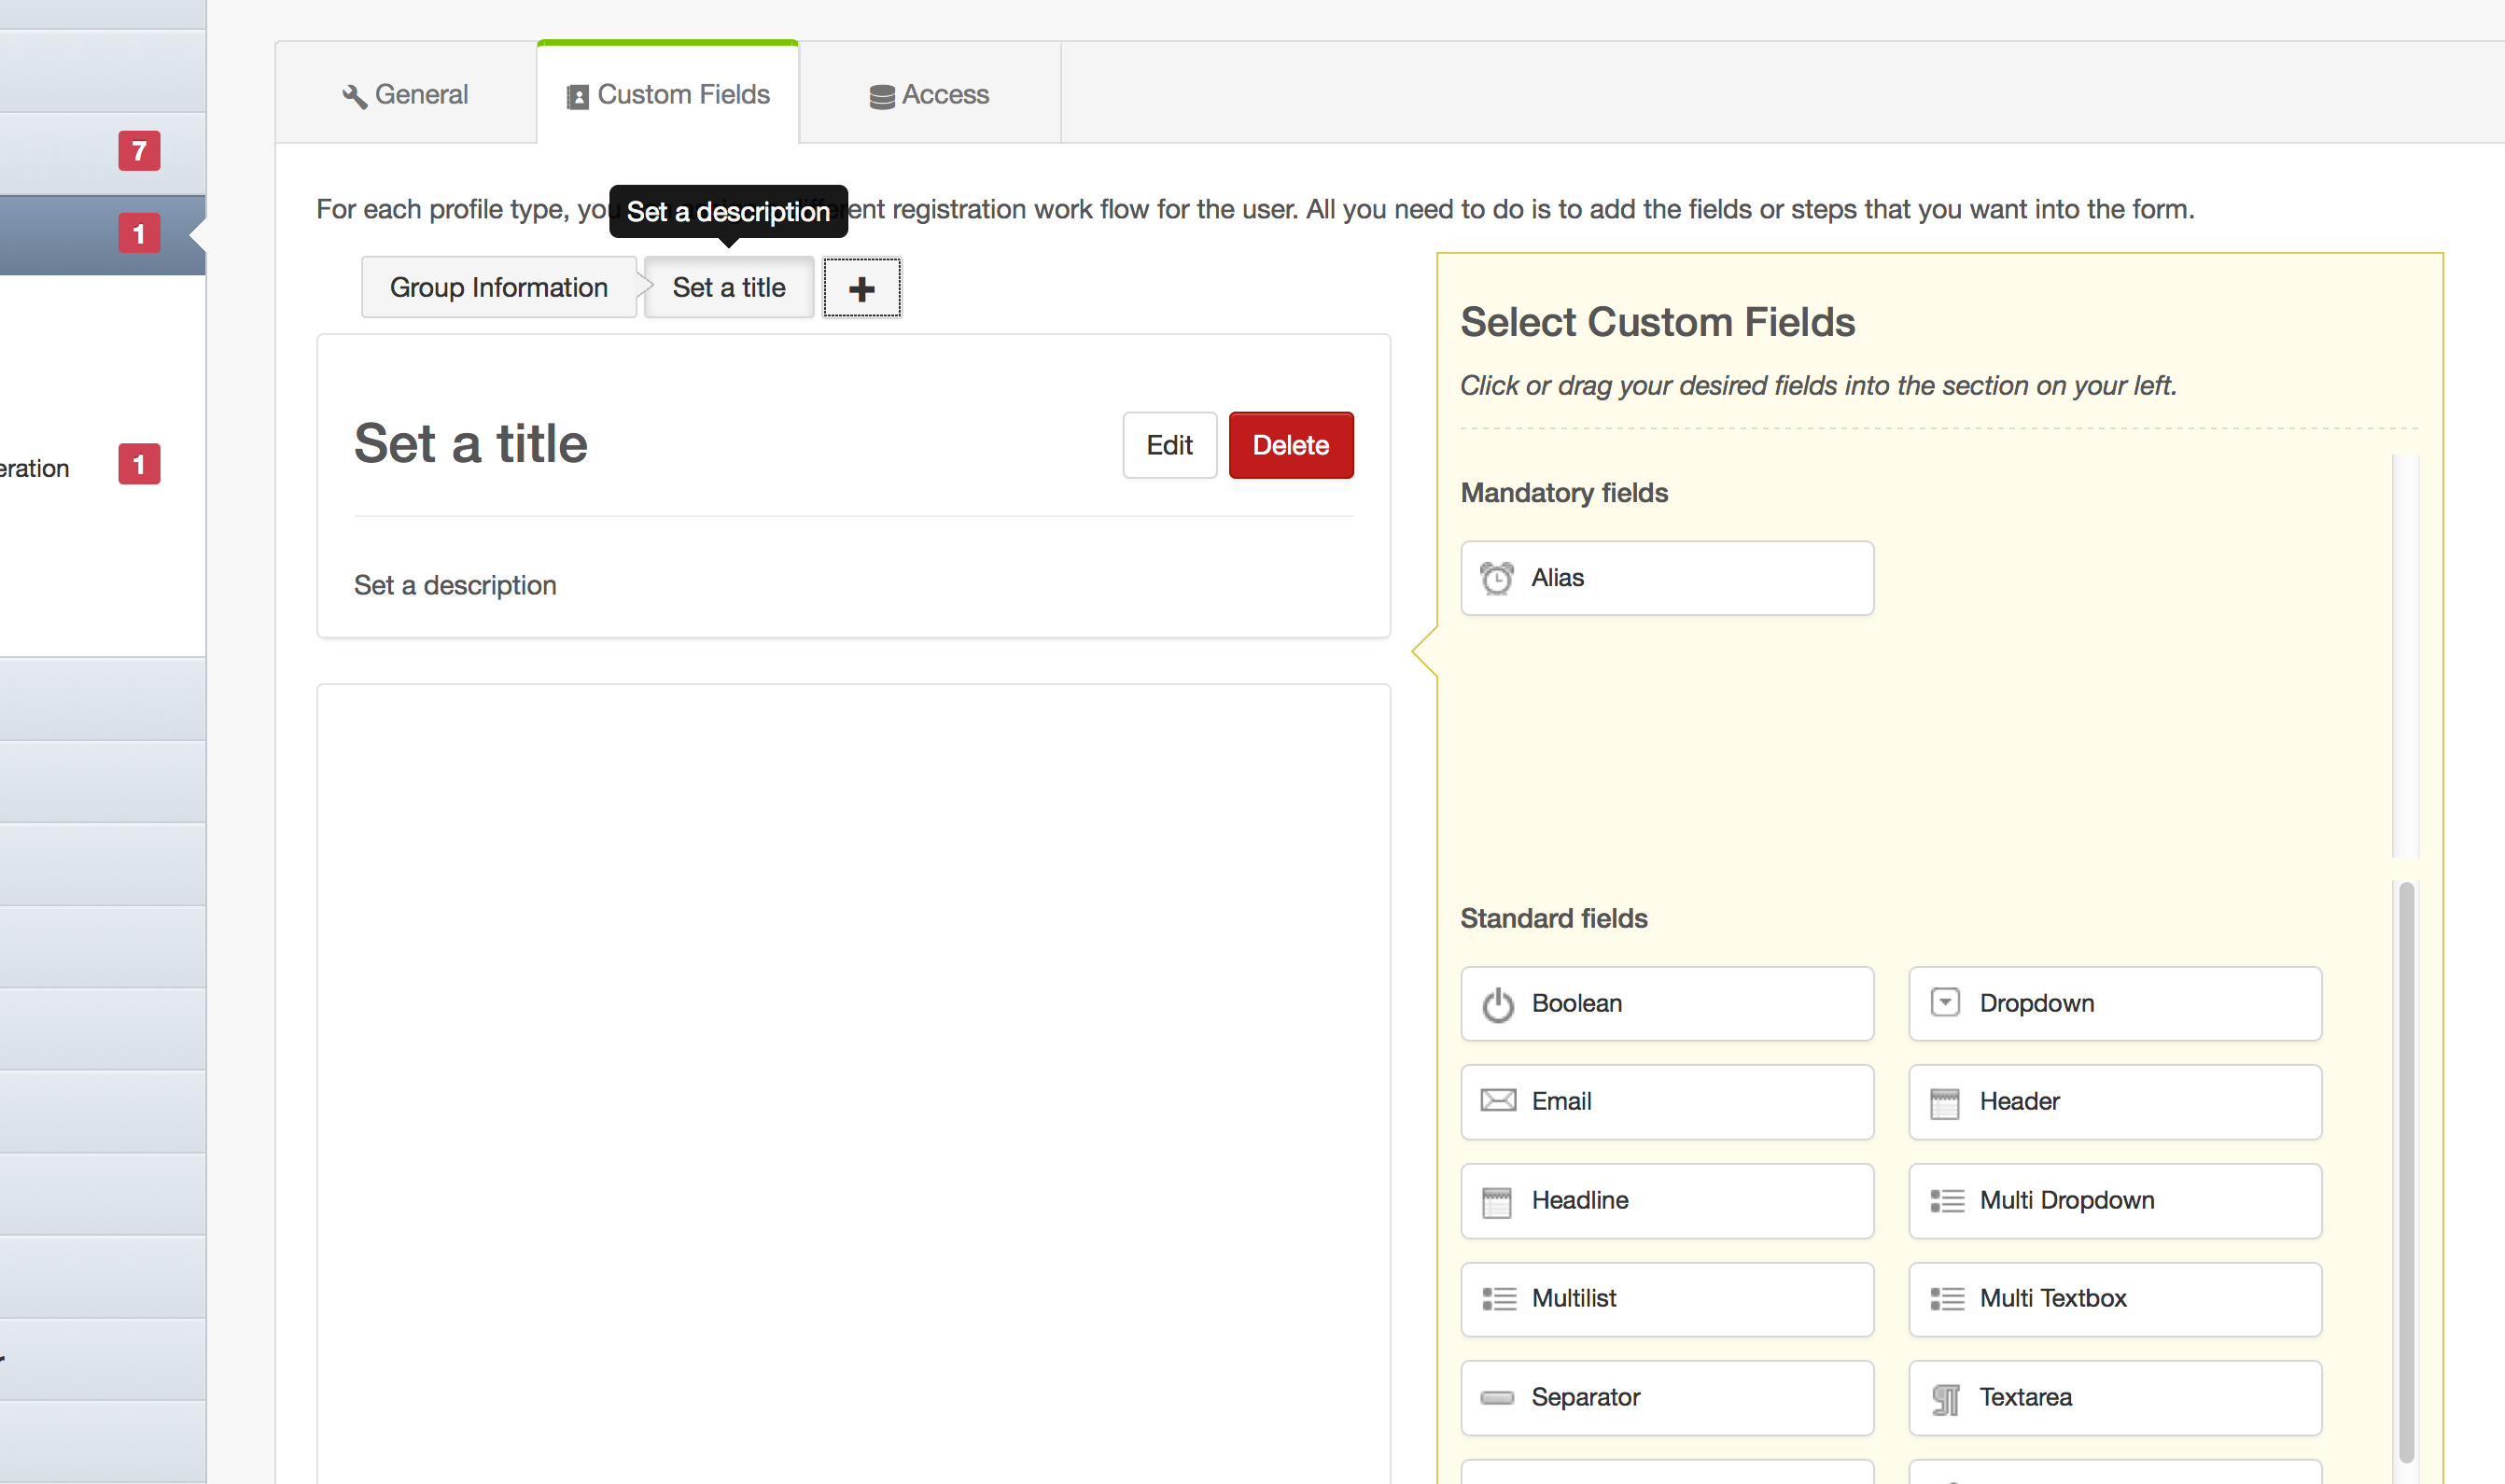 Create New Step for Group Categories in EasySocial